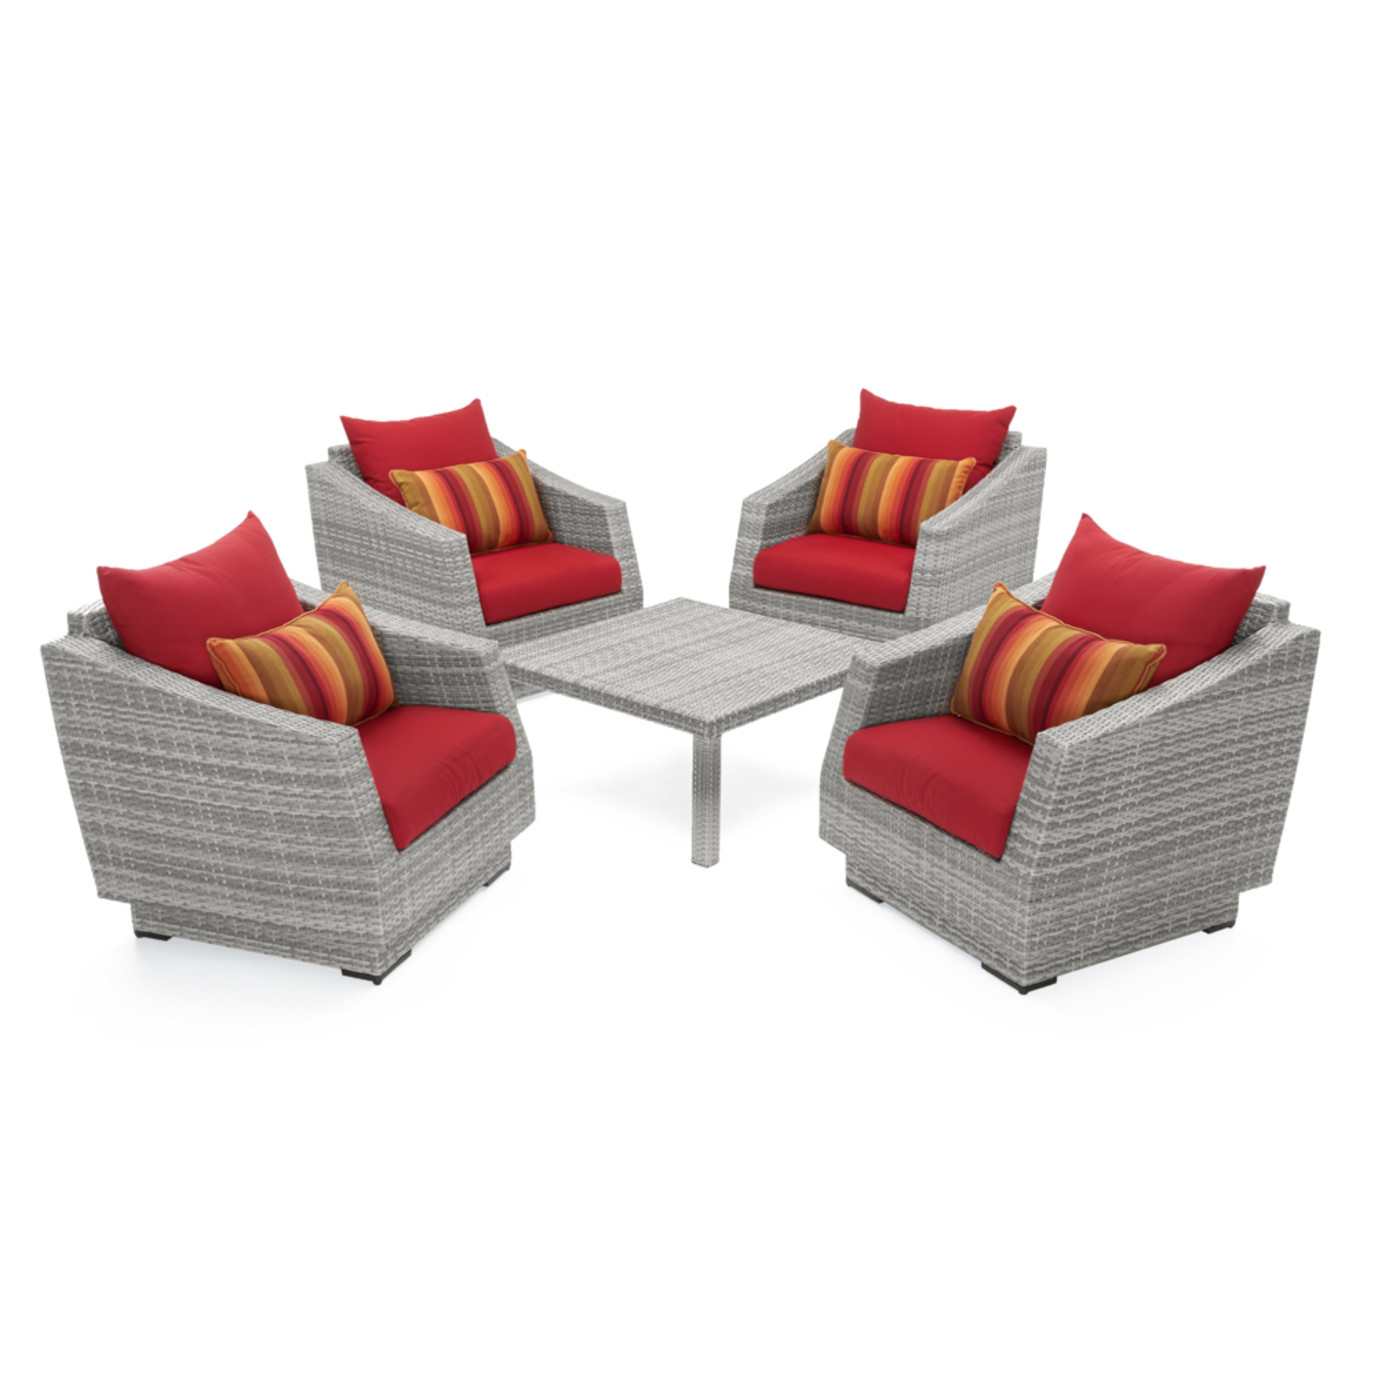 Cannes™ 5pc Club & Table Chat Set - Sunset Red